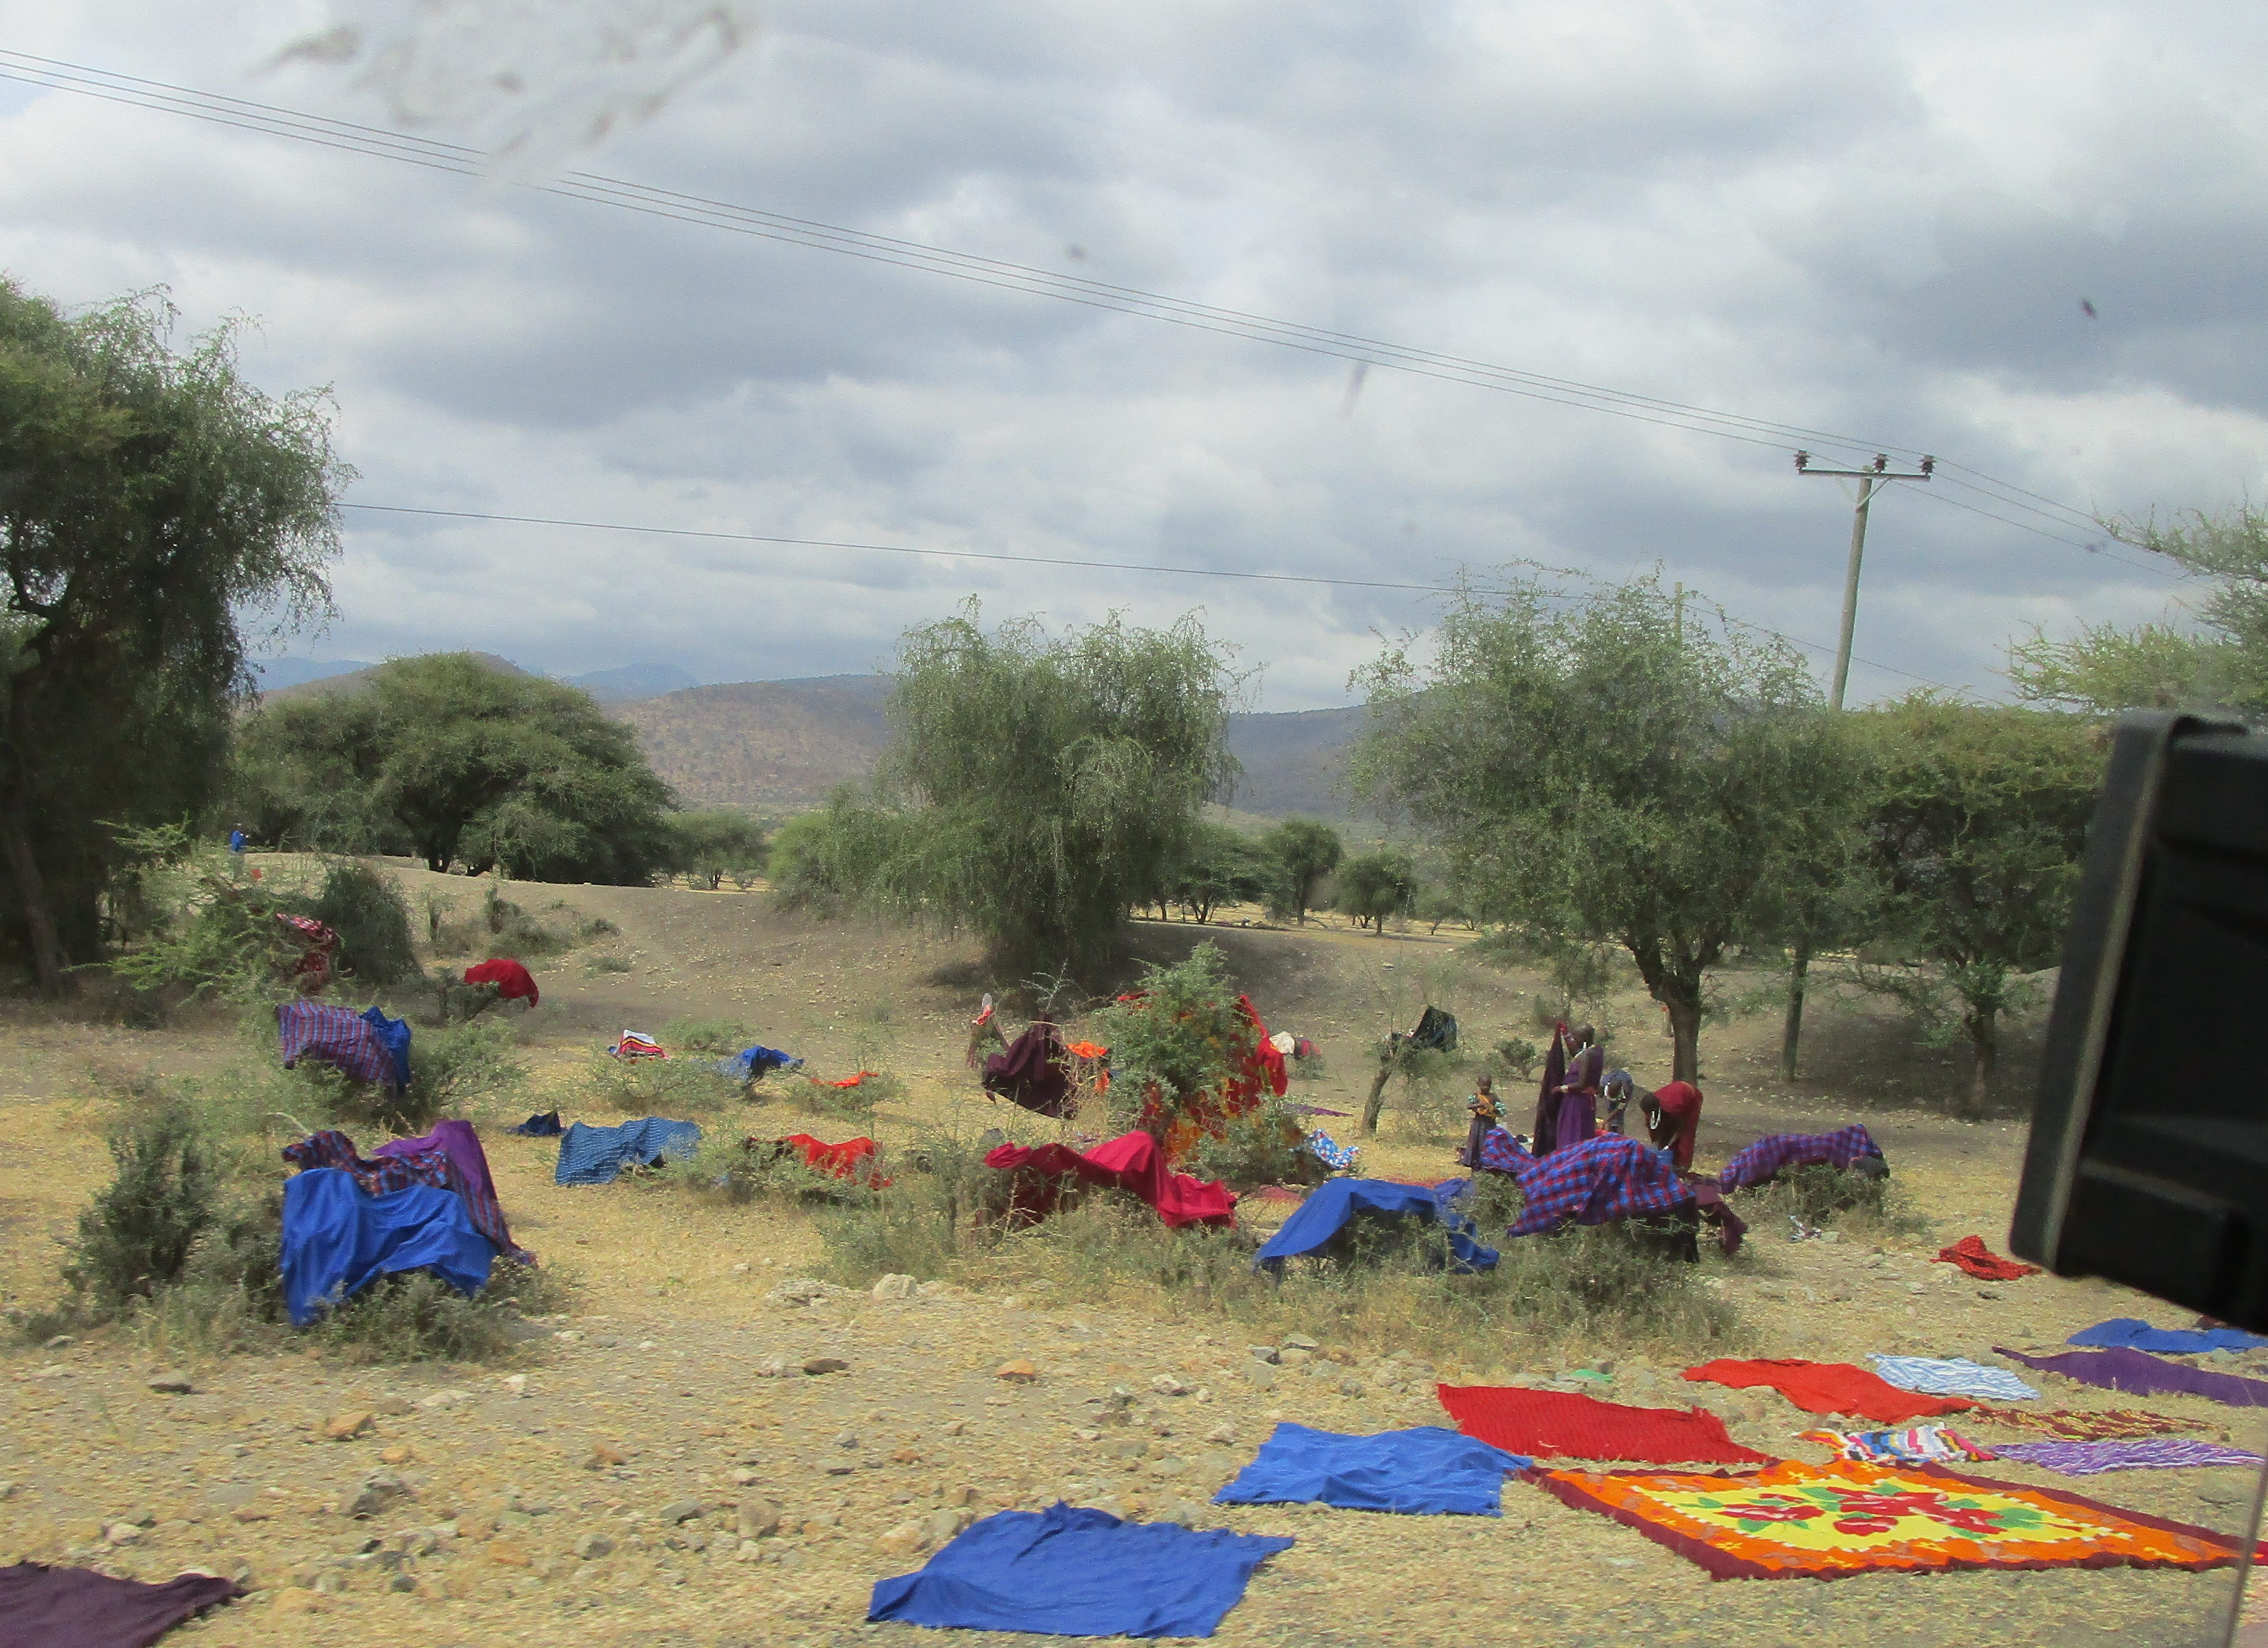 Villagers drying laundry Moshi